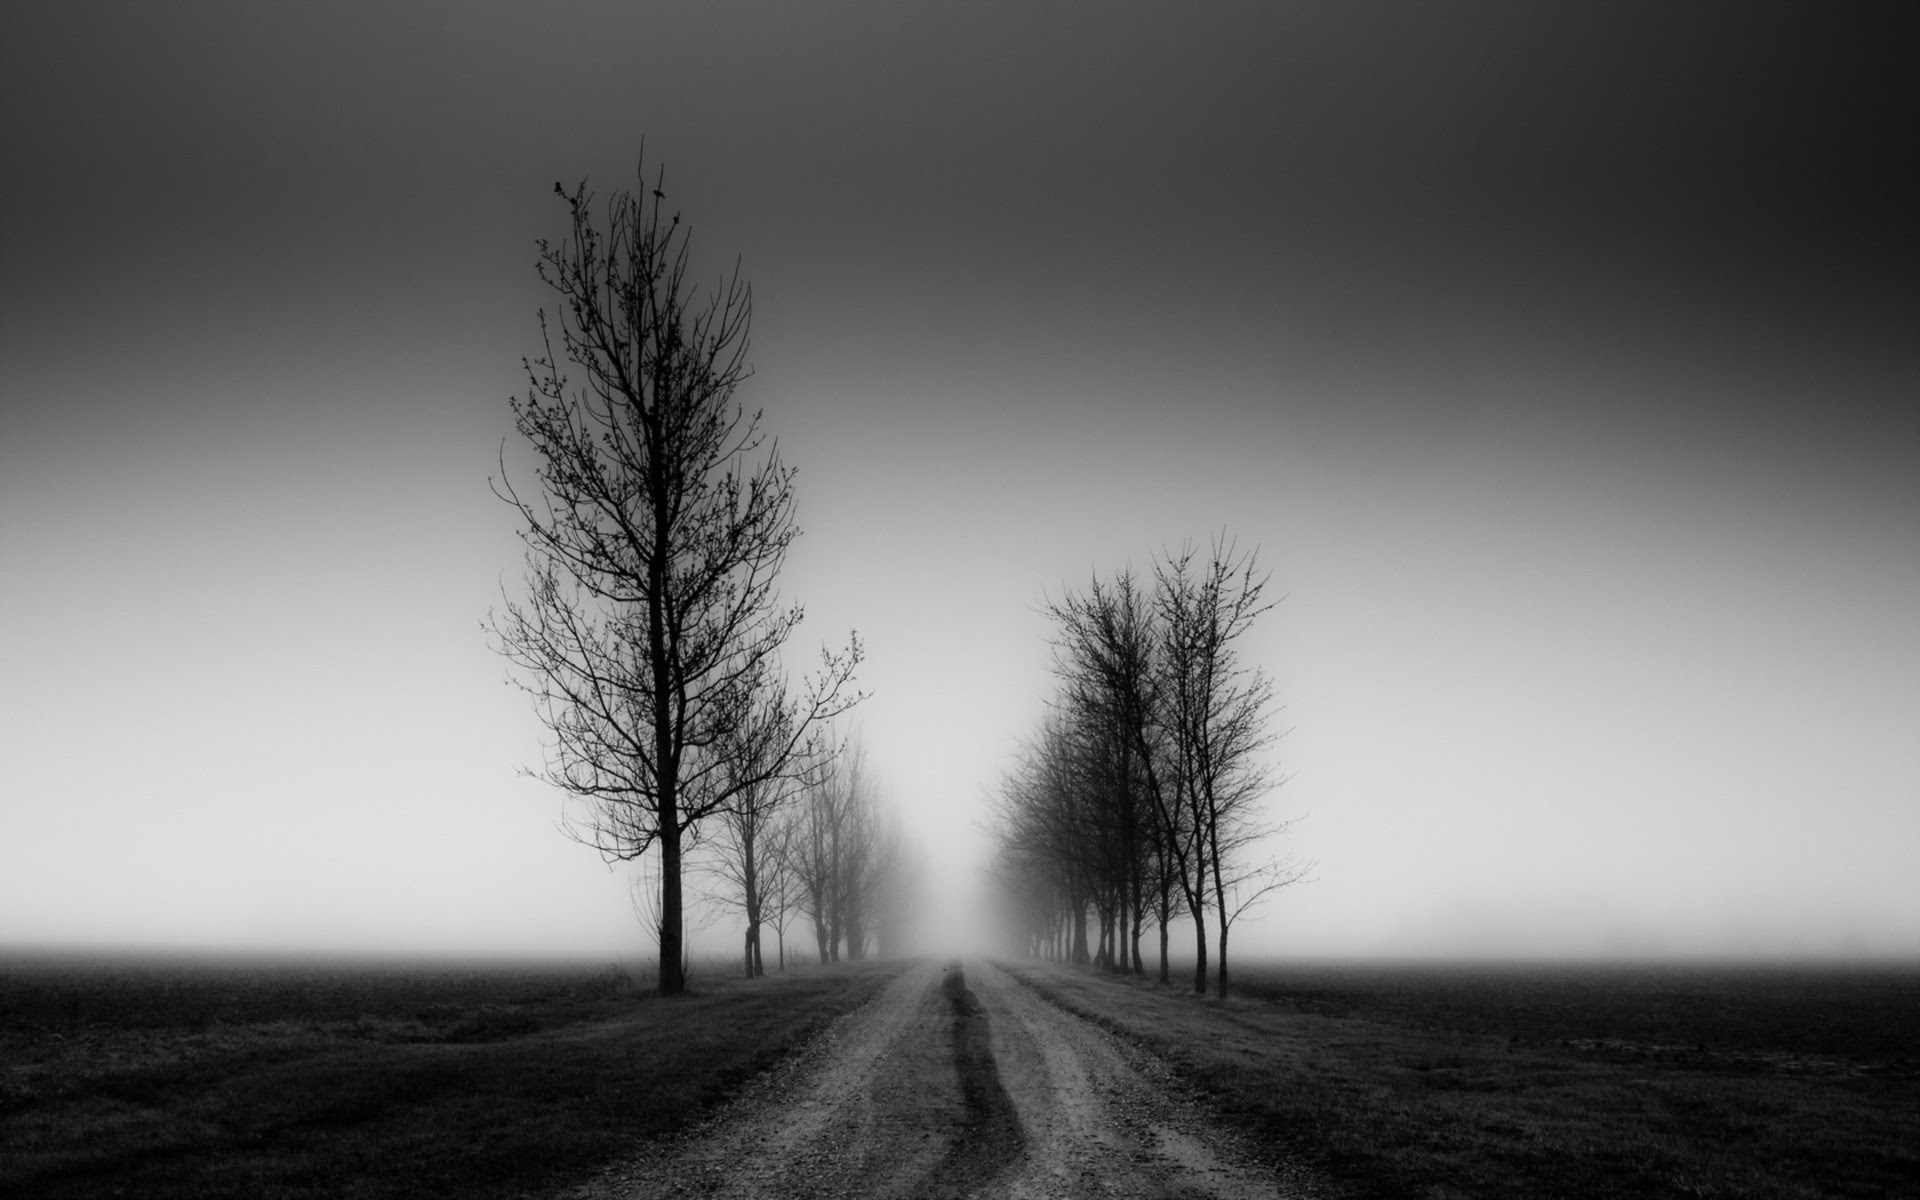 Black And White Nature Wallpaper 60 Images